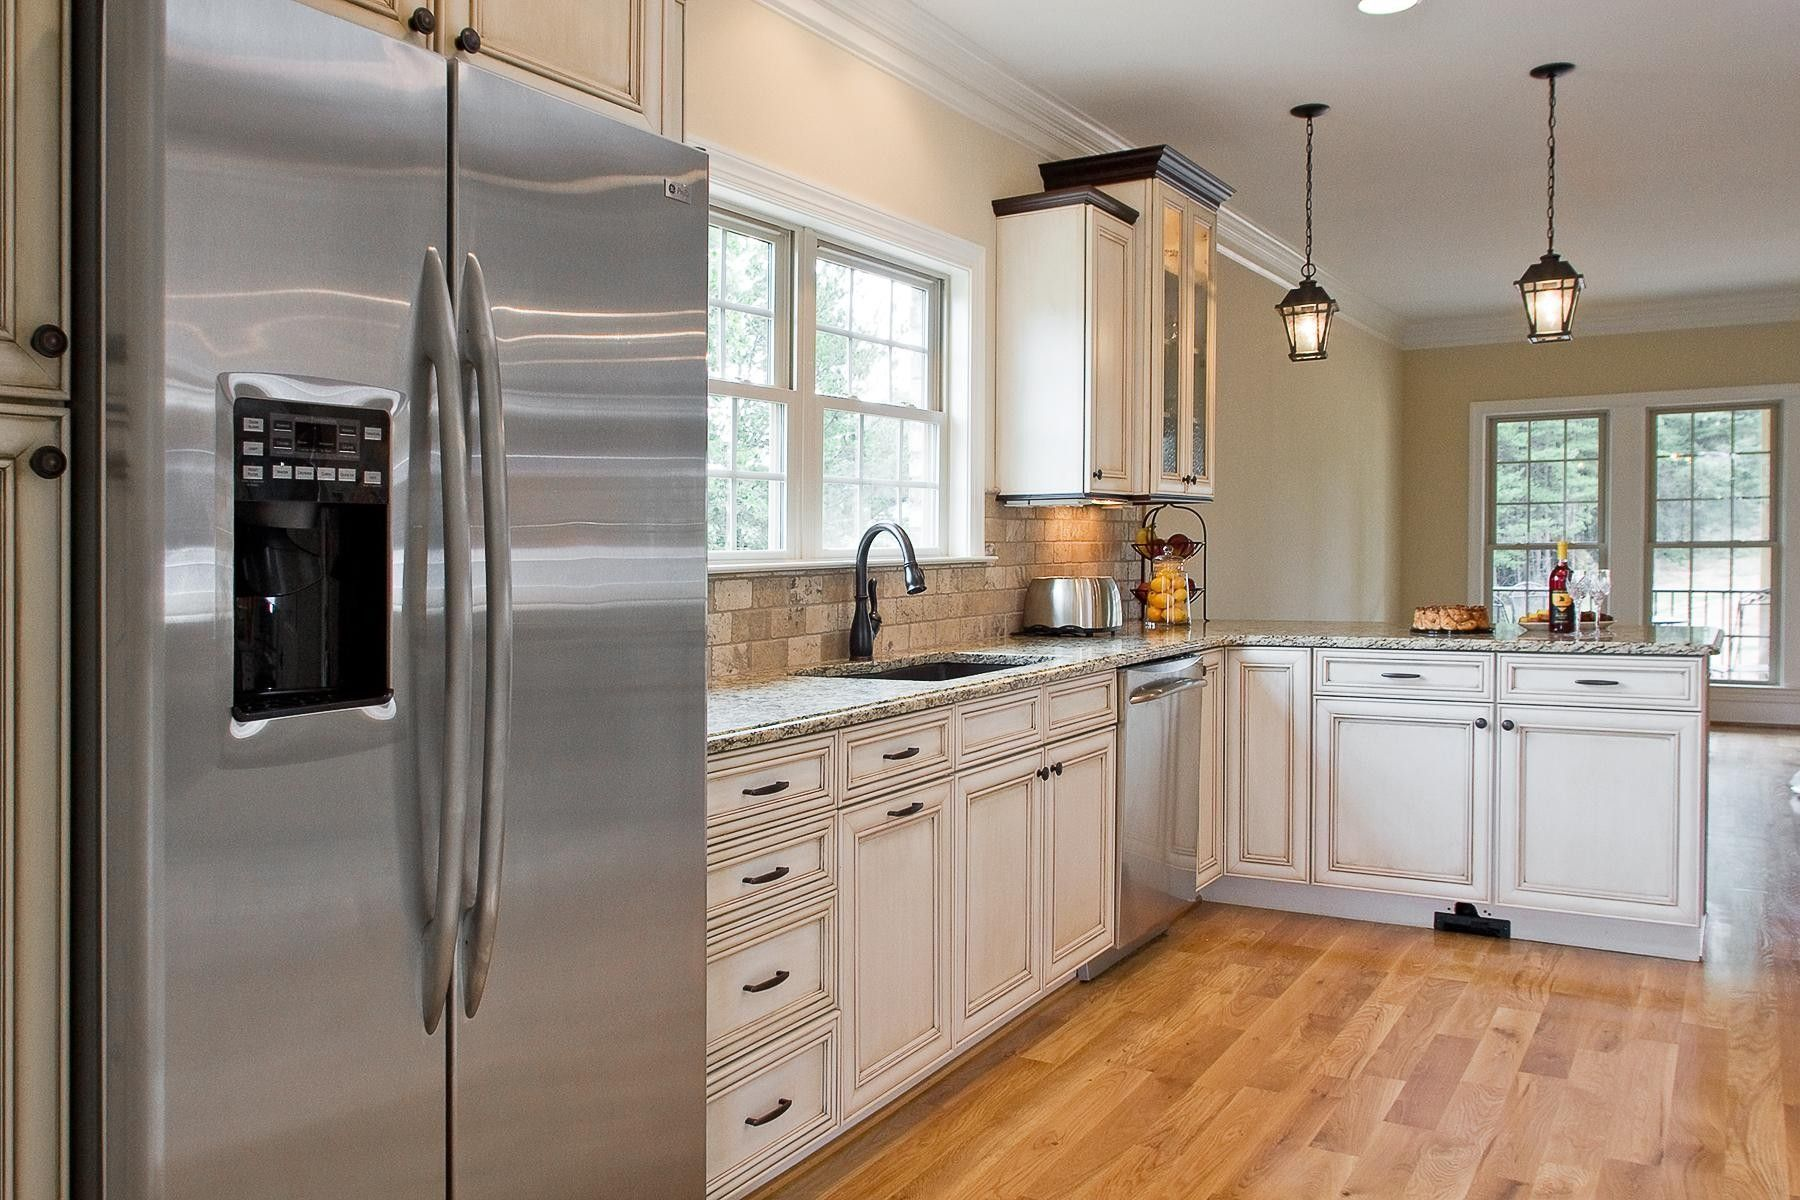 New Post Elegant Stainless Steel Kitchen Appliances With White Cabinets